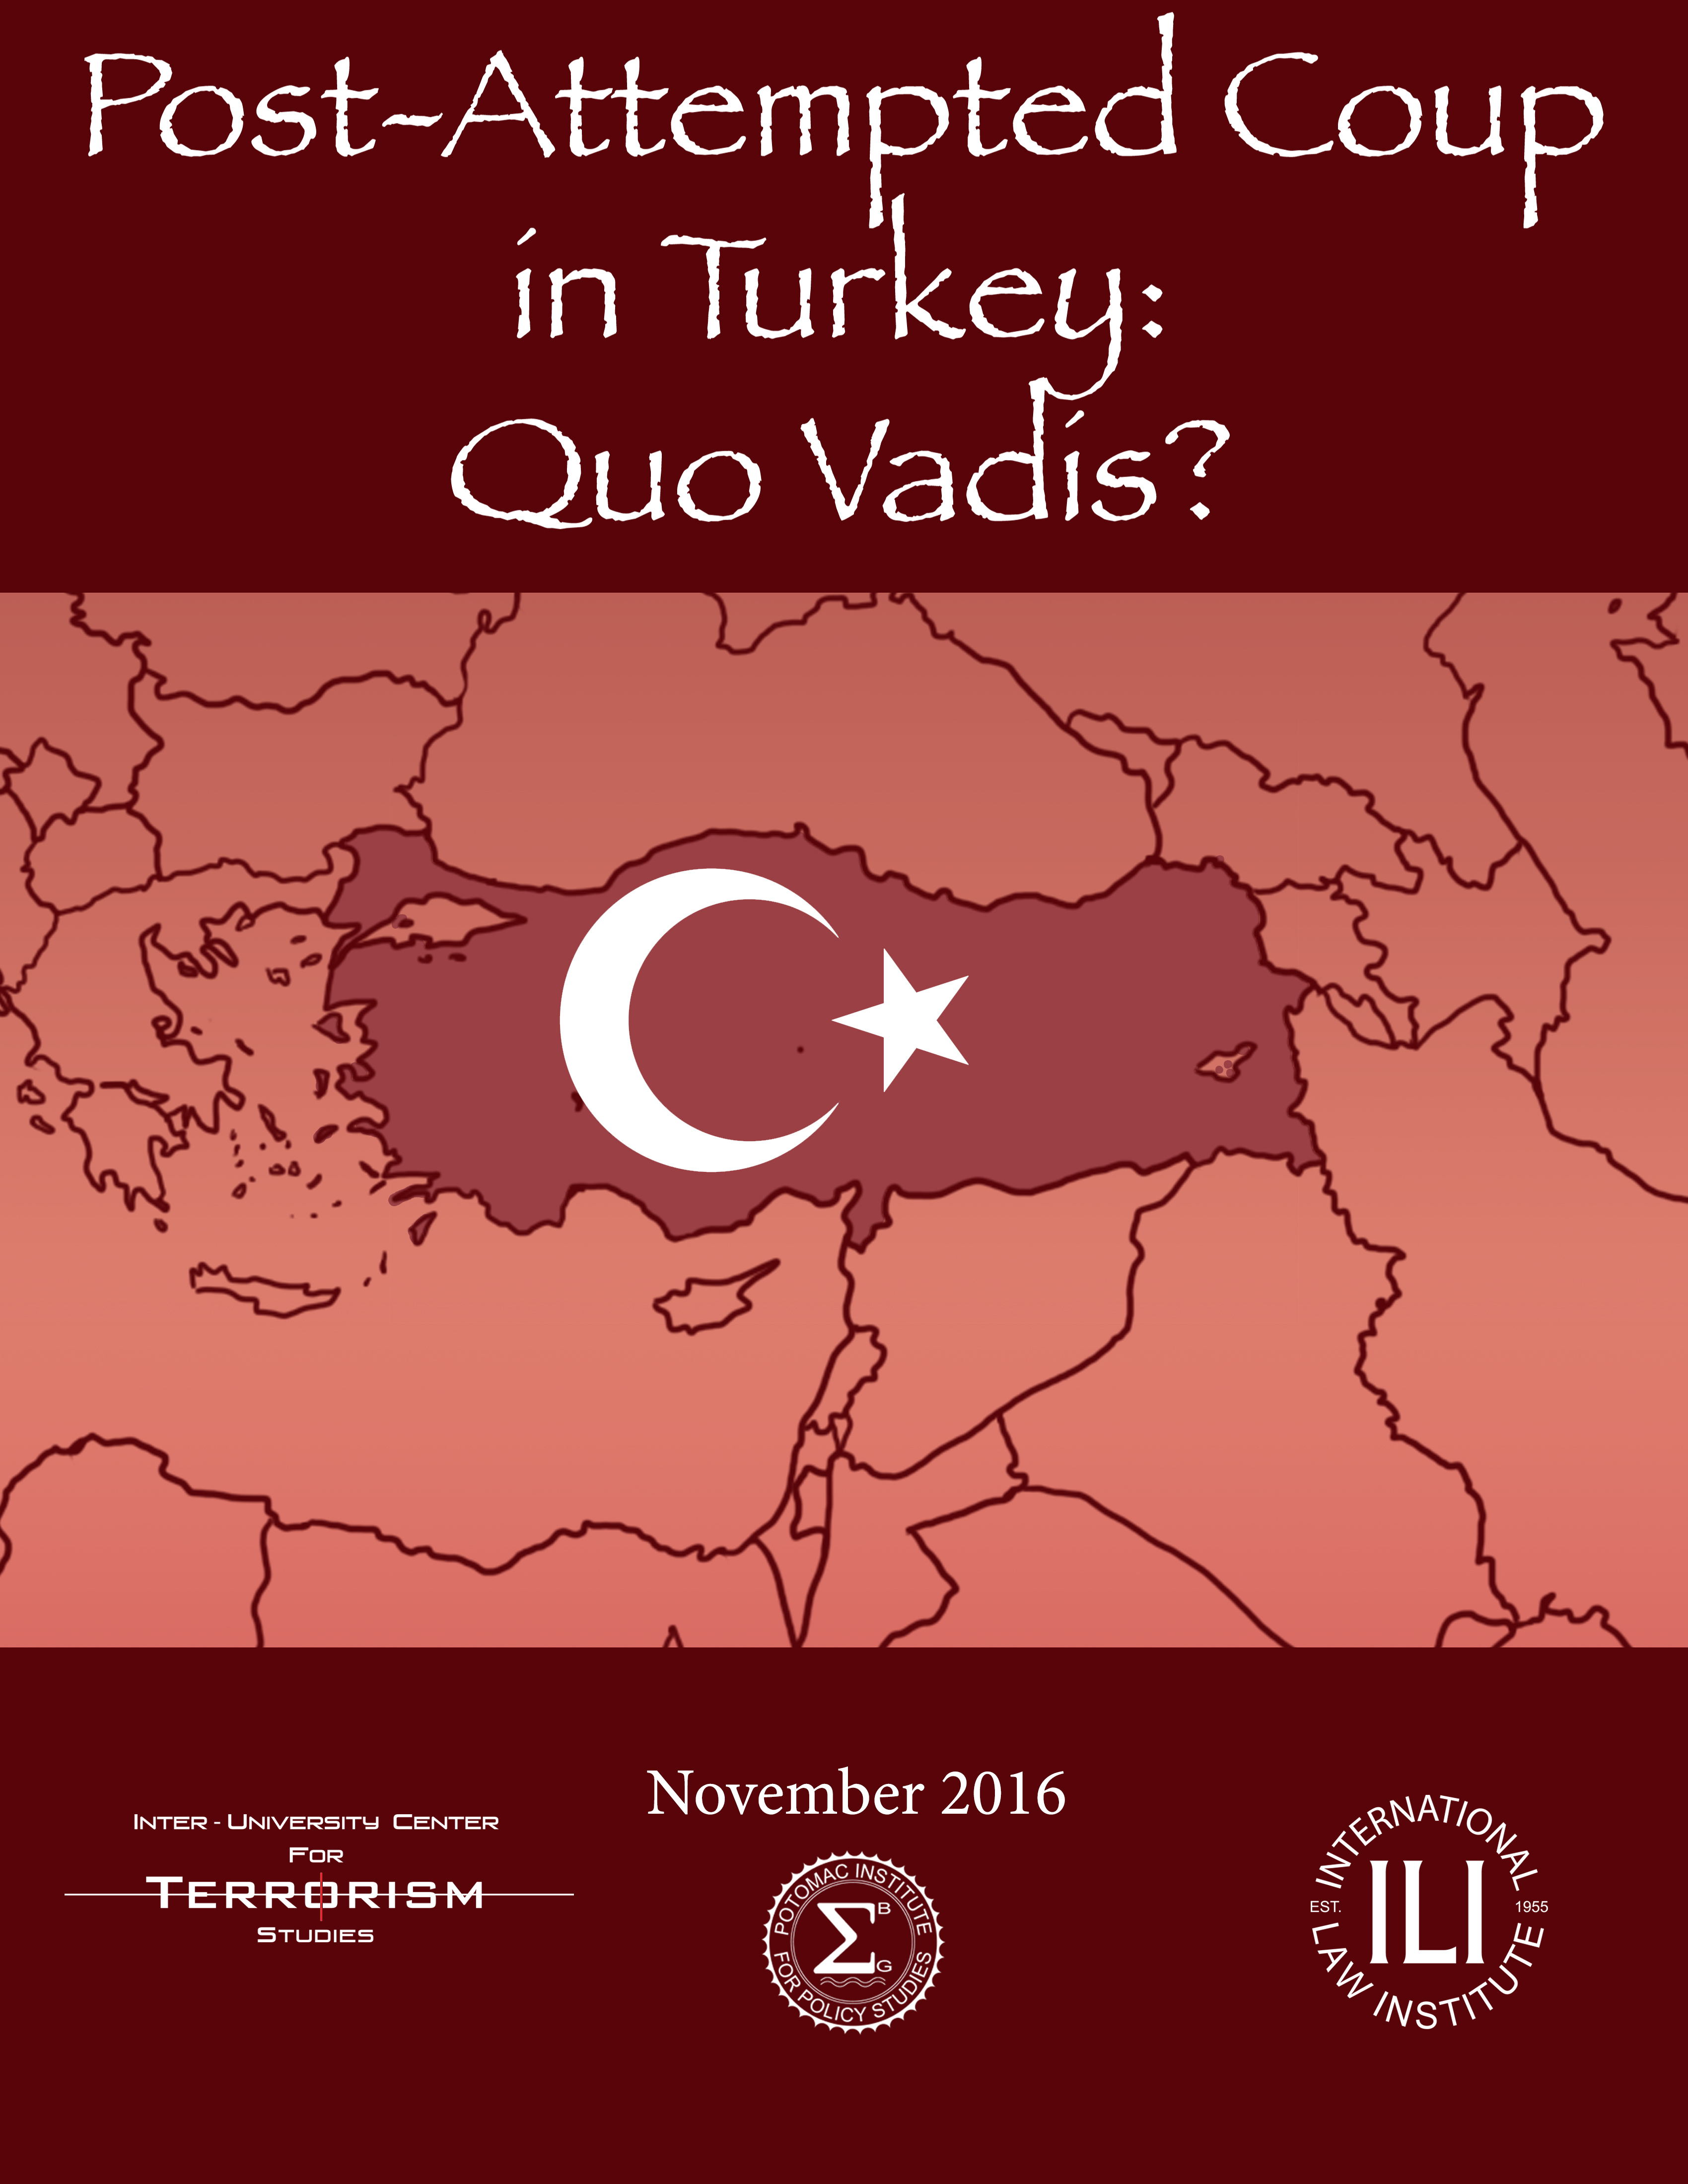 Post-Attempted Coup in Turkey: Quo Vadis?